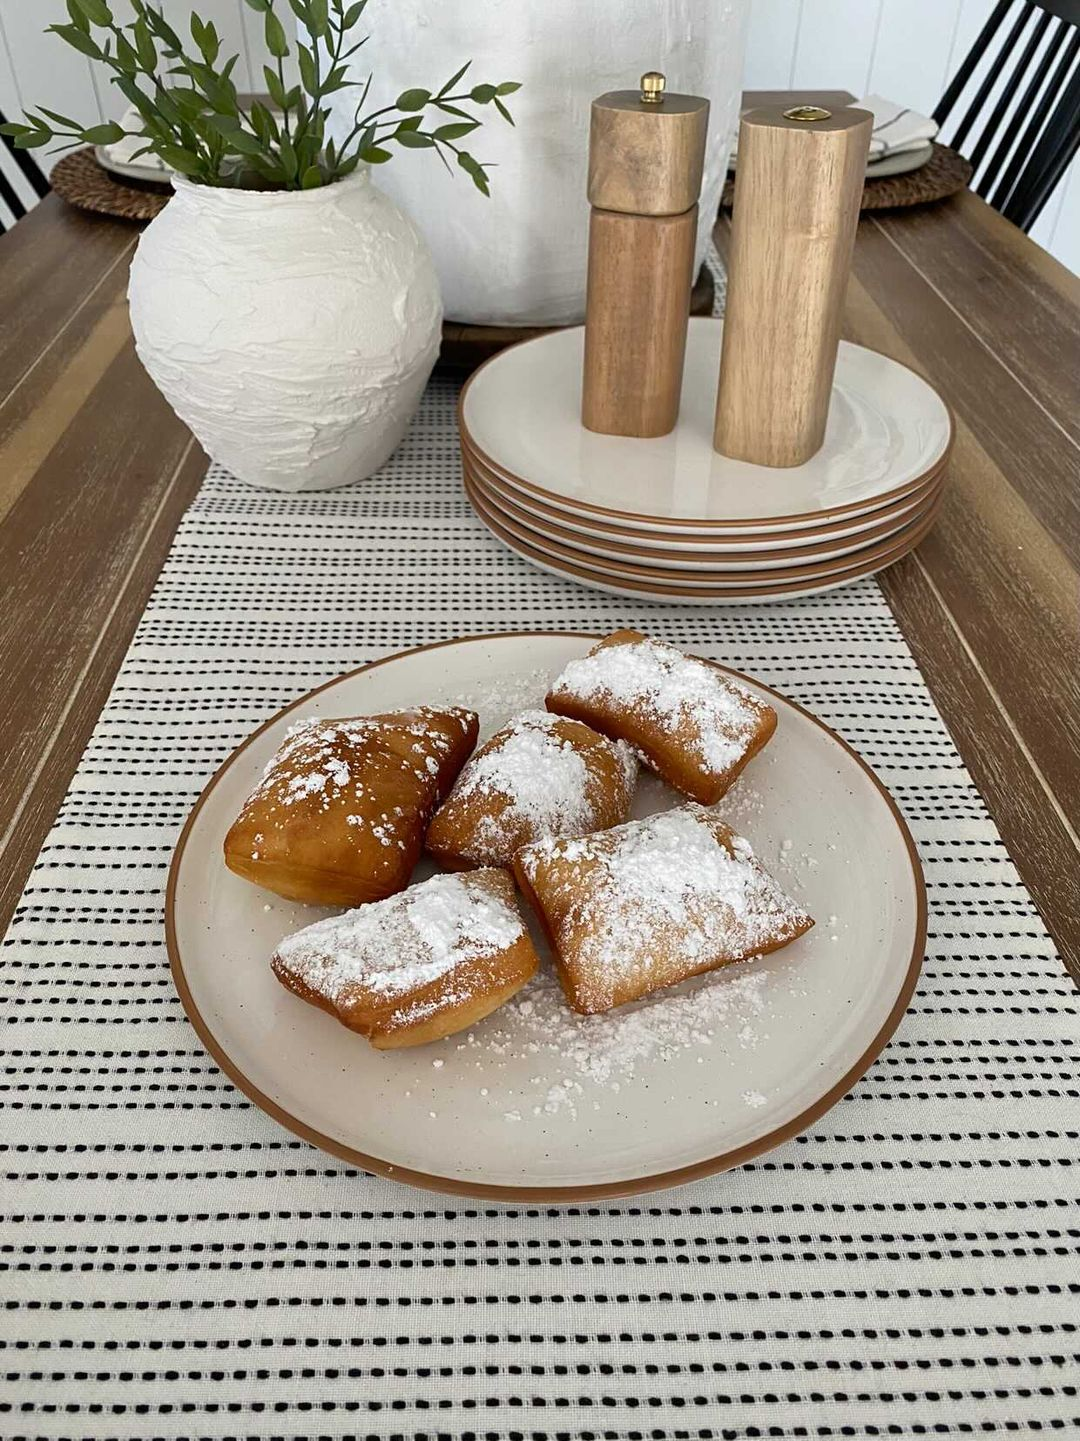 beignets on a Mora Ceramics plate dusted with powdered sugar